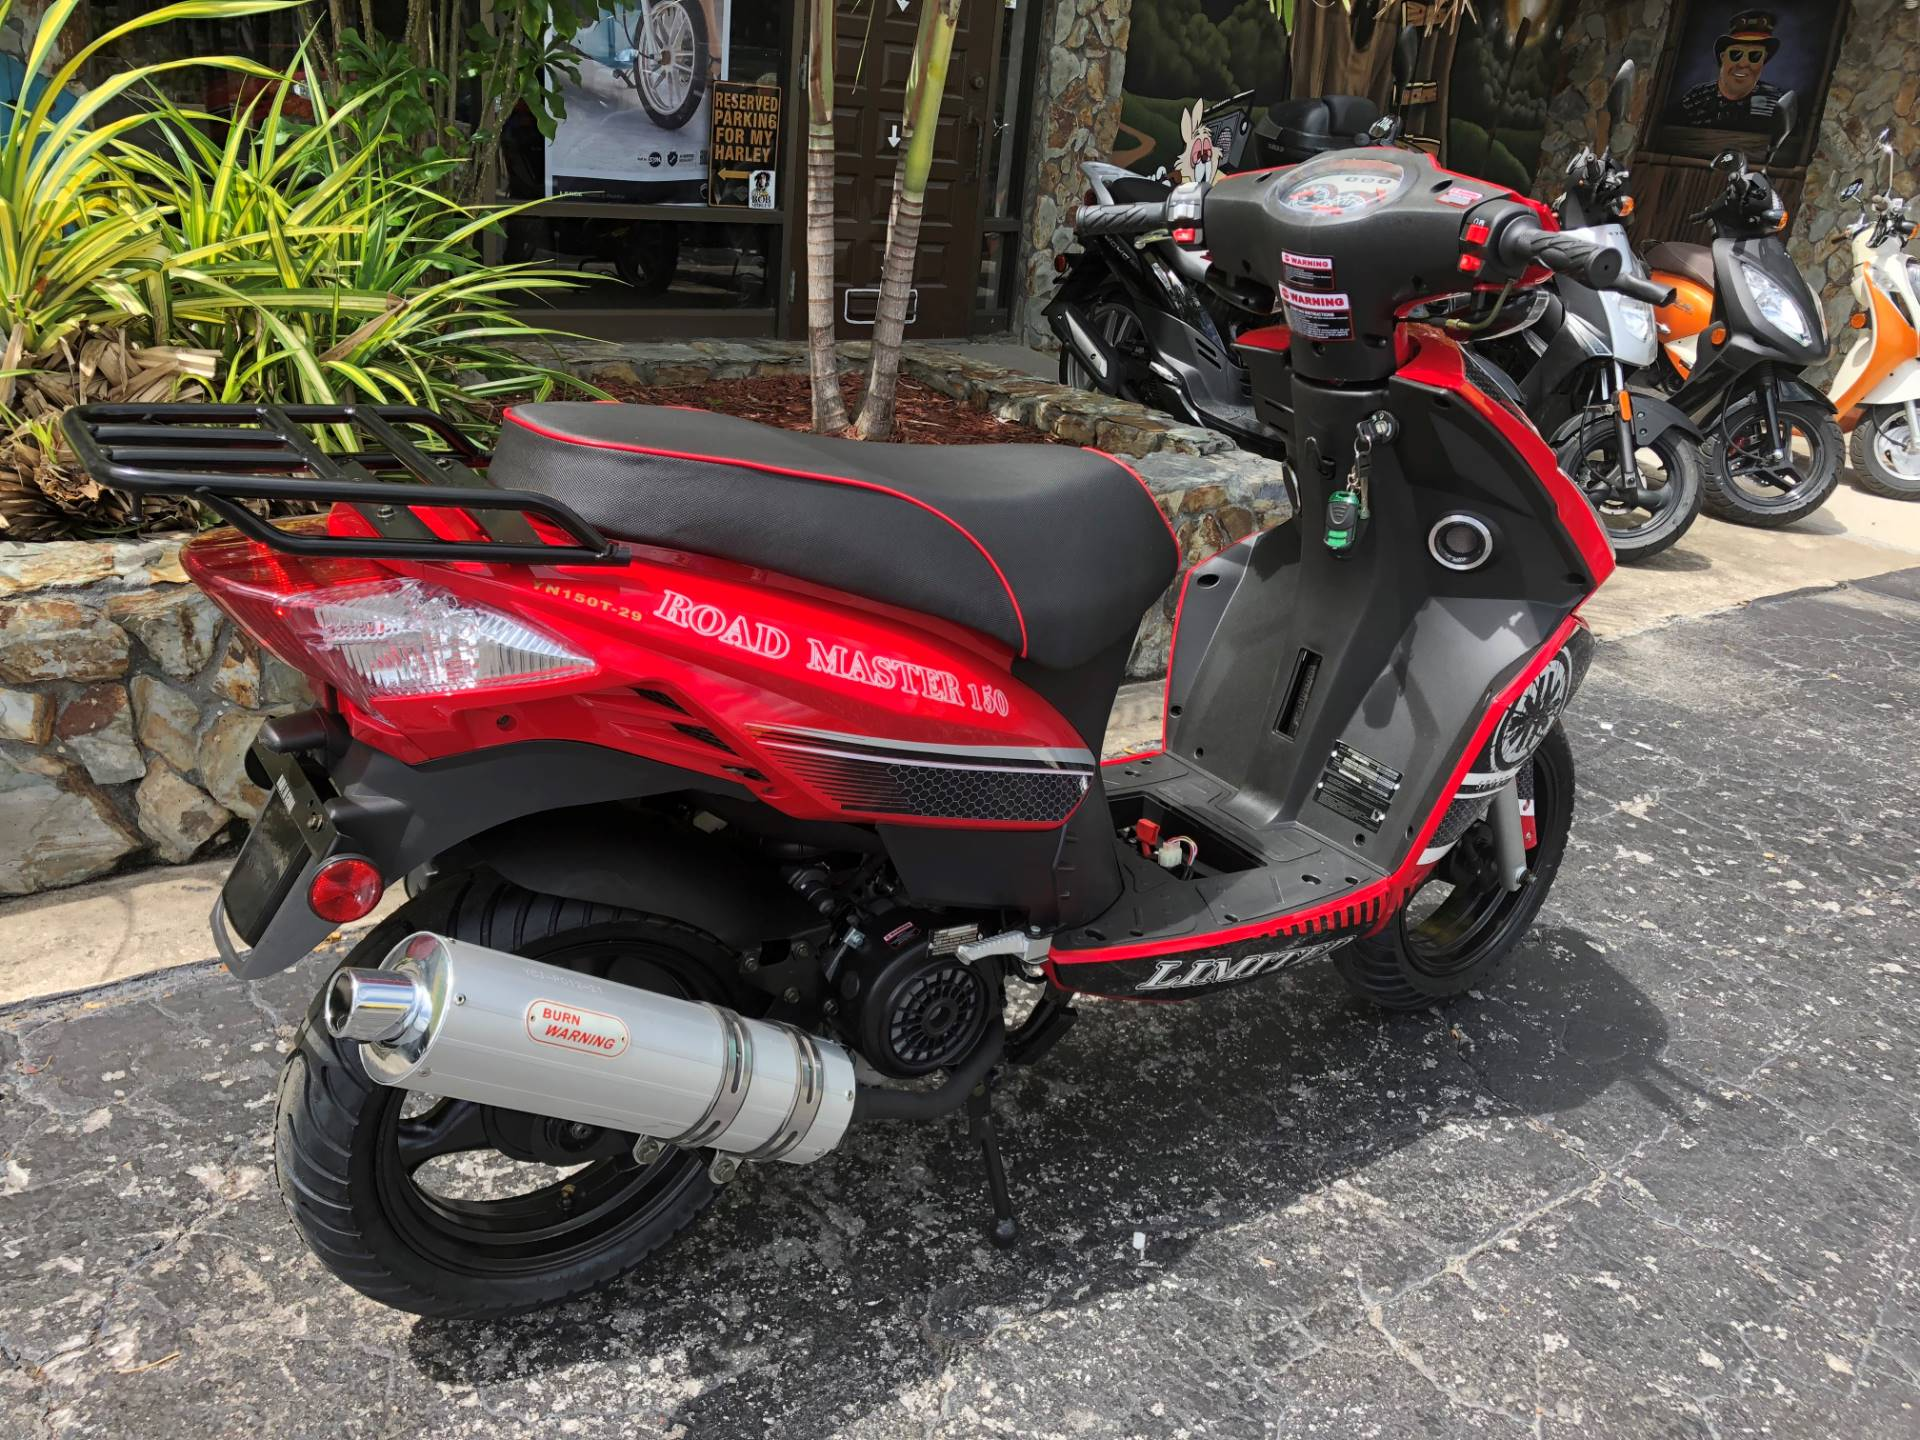 2019 Vitacci Roadmaster 150 in Largo, Florida - Photo 12